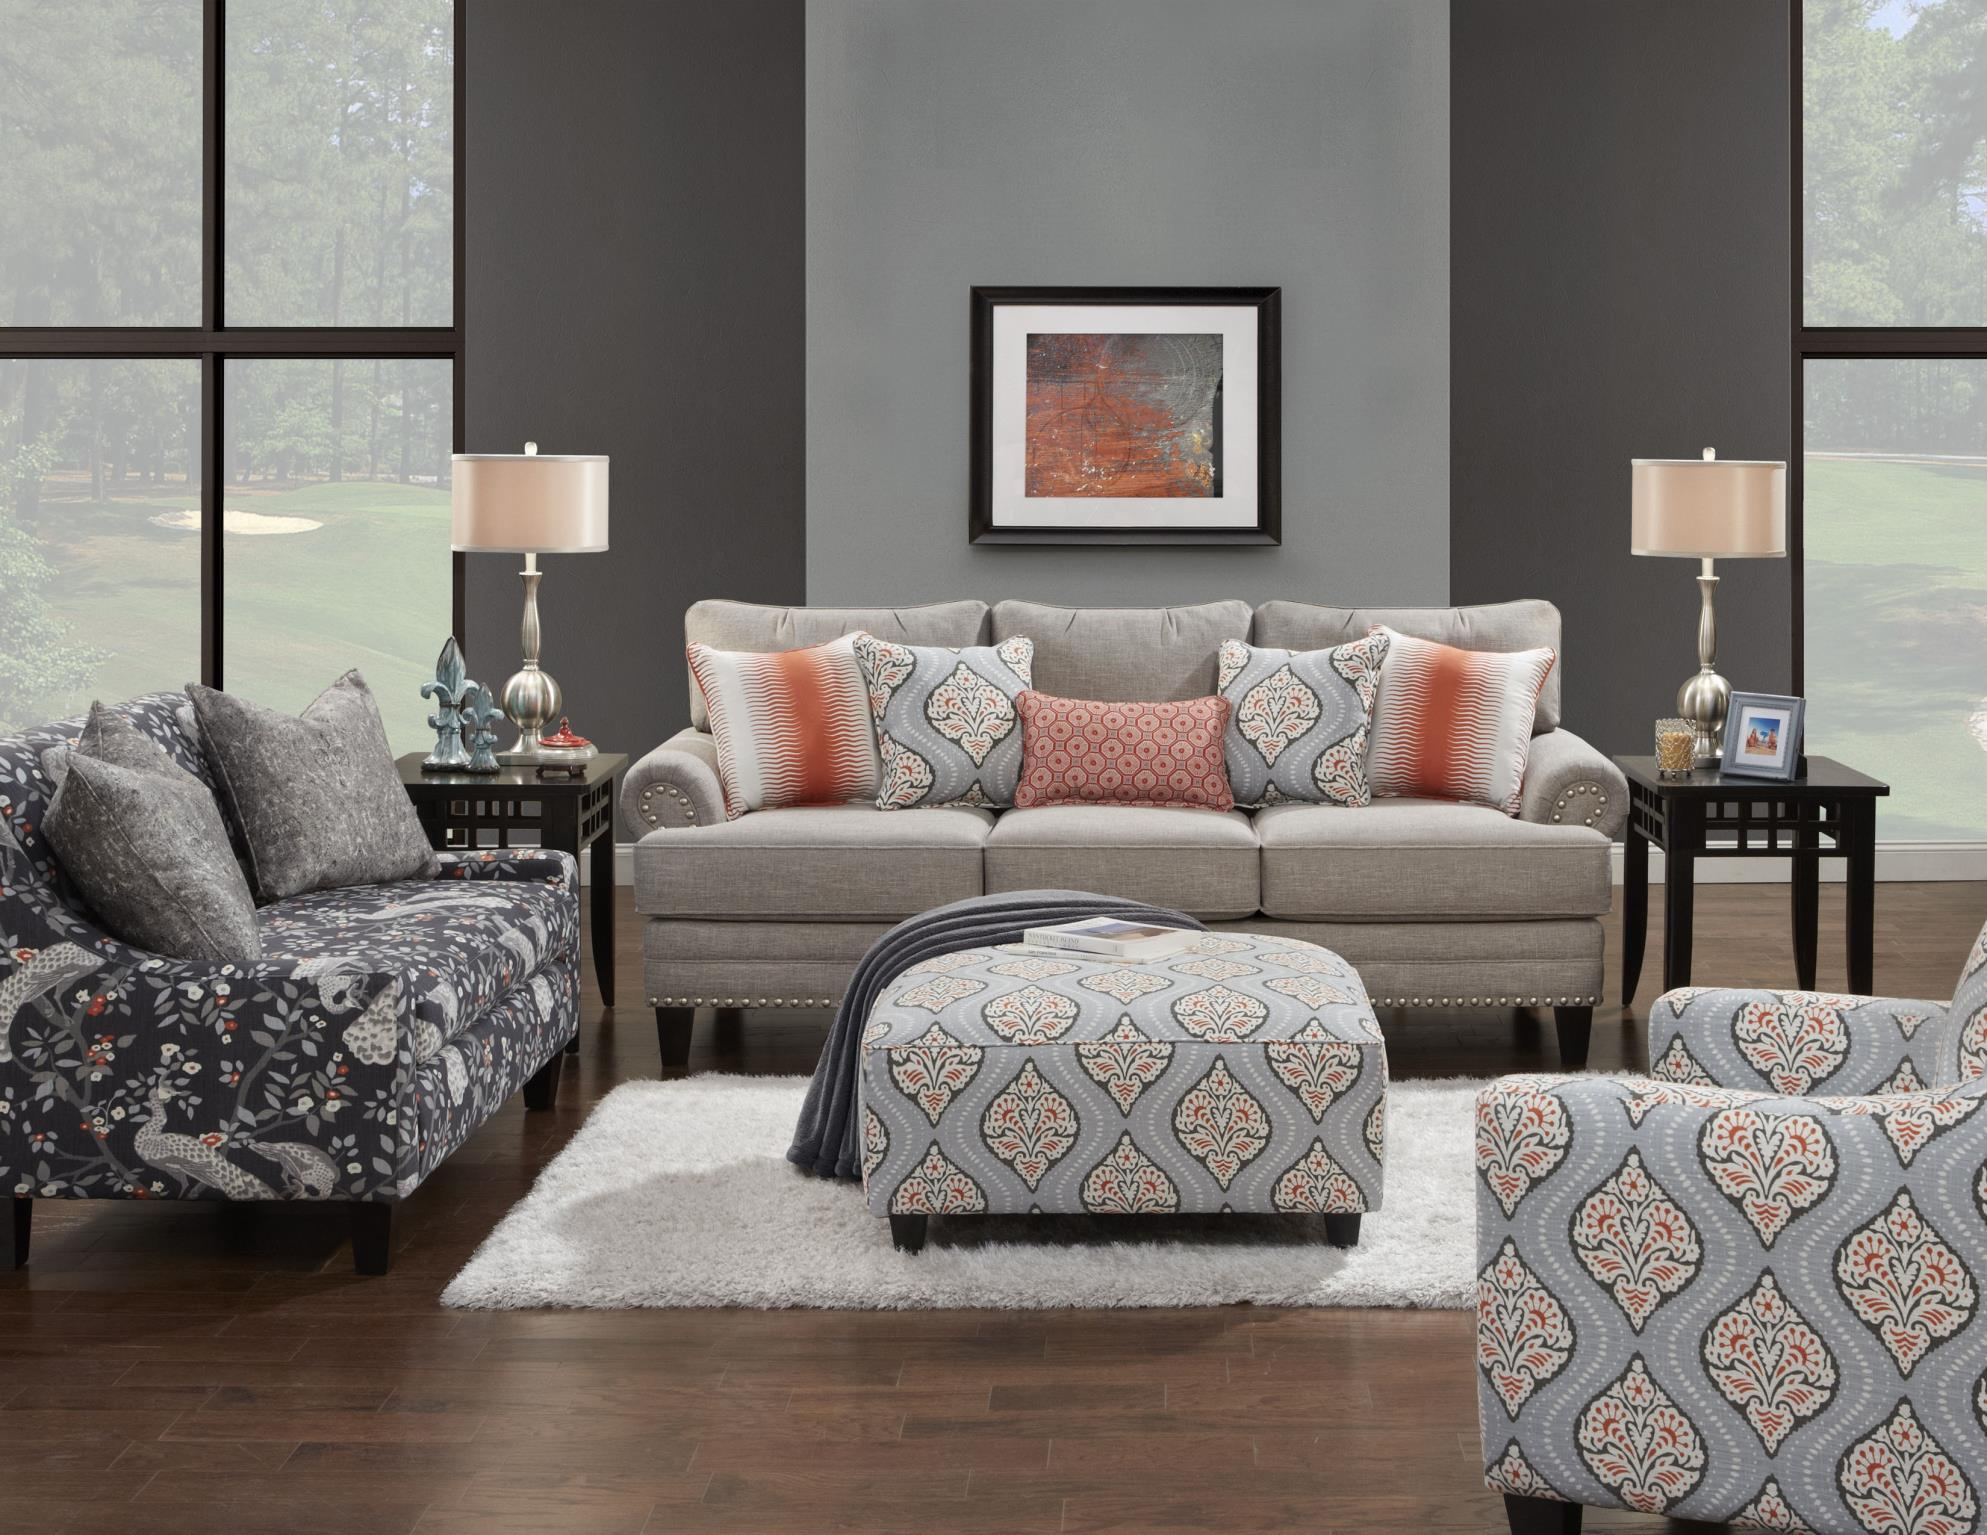 Fusion Furniture 2830 Stationary Living Room Group - Item Number: 2830 Living Room Group 1